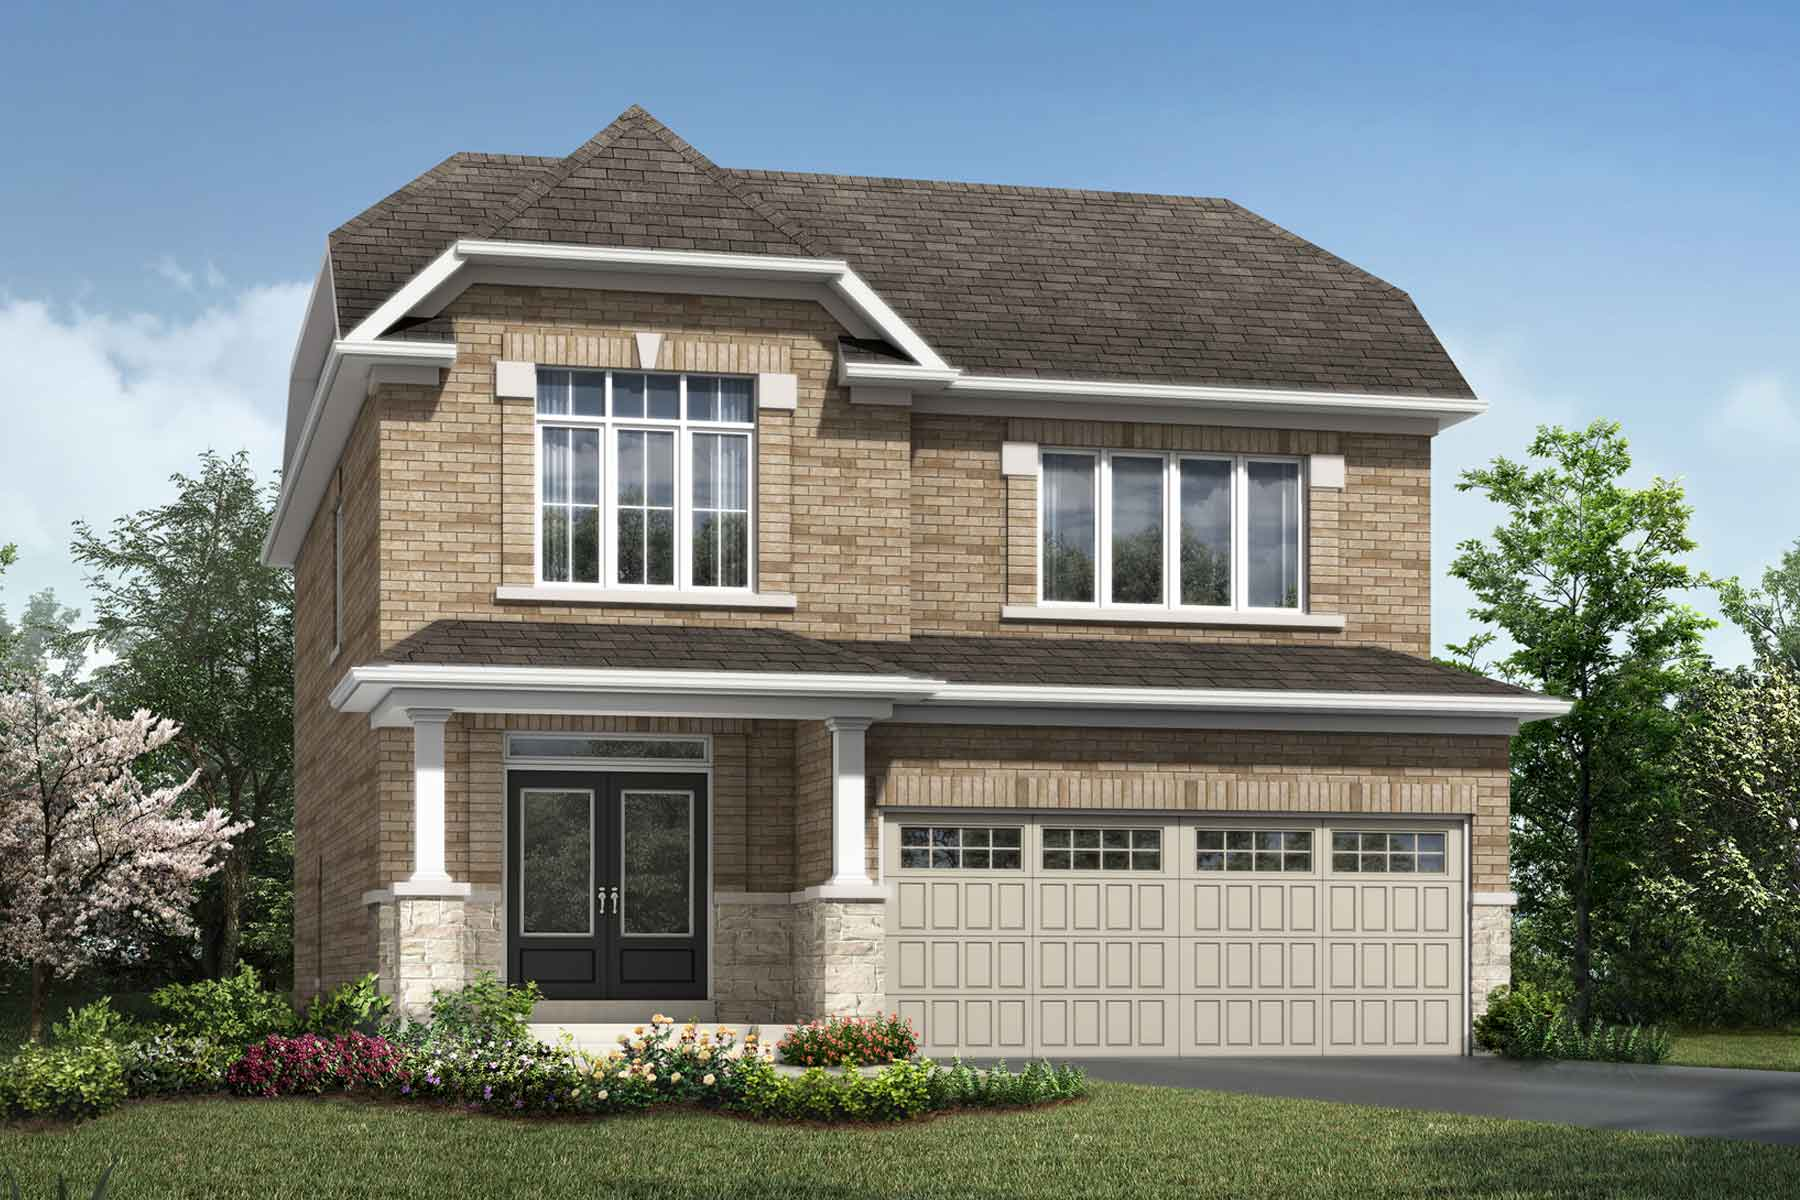 Granby Plan ElevationTraditional_Soleil_Granby at Soleil in Milton Ontario by Mattamy Homes